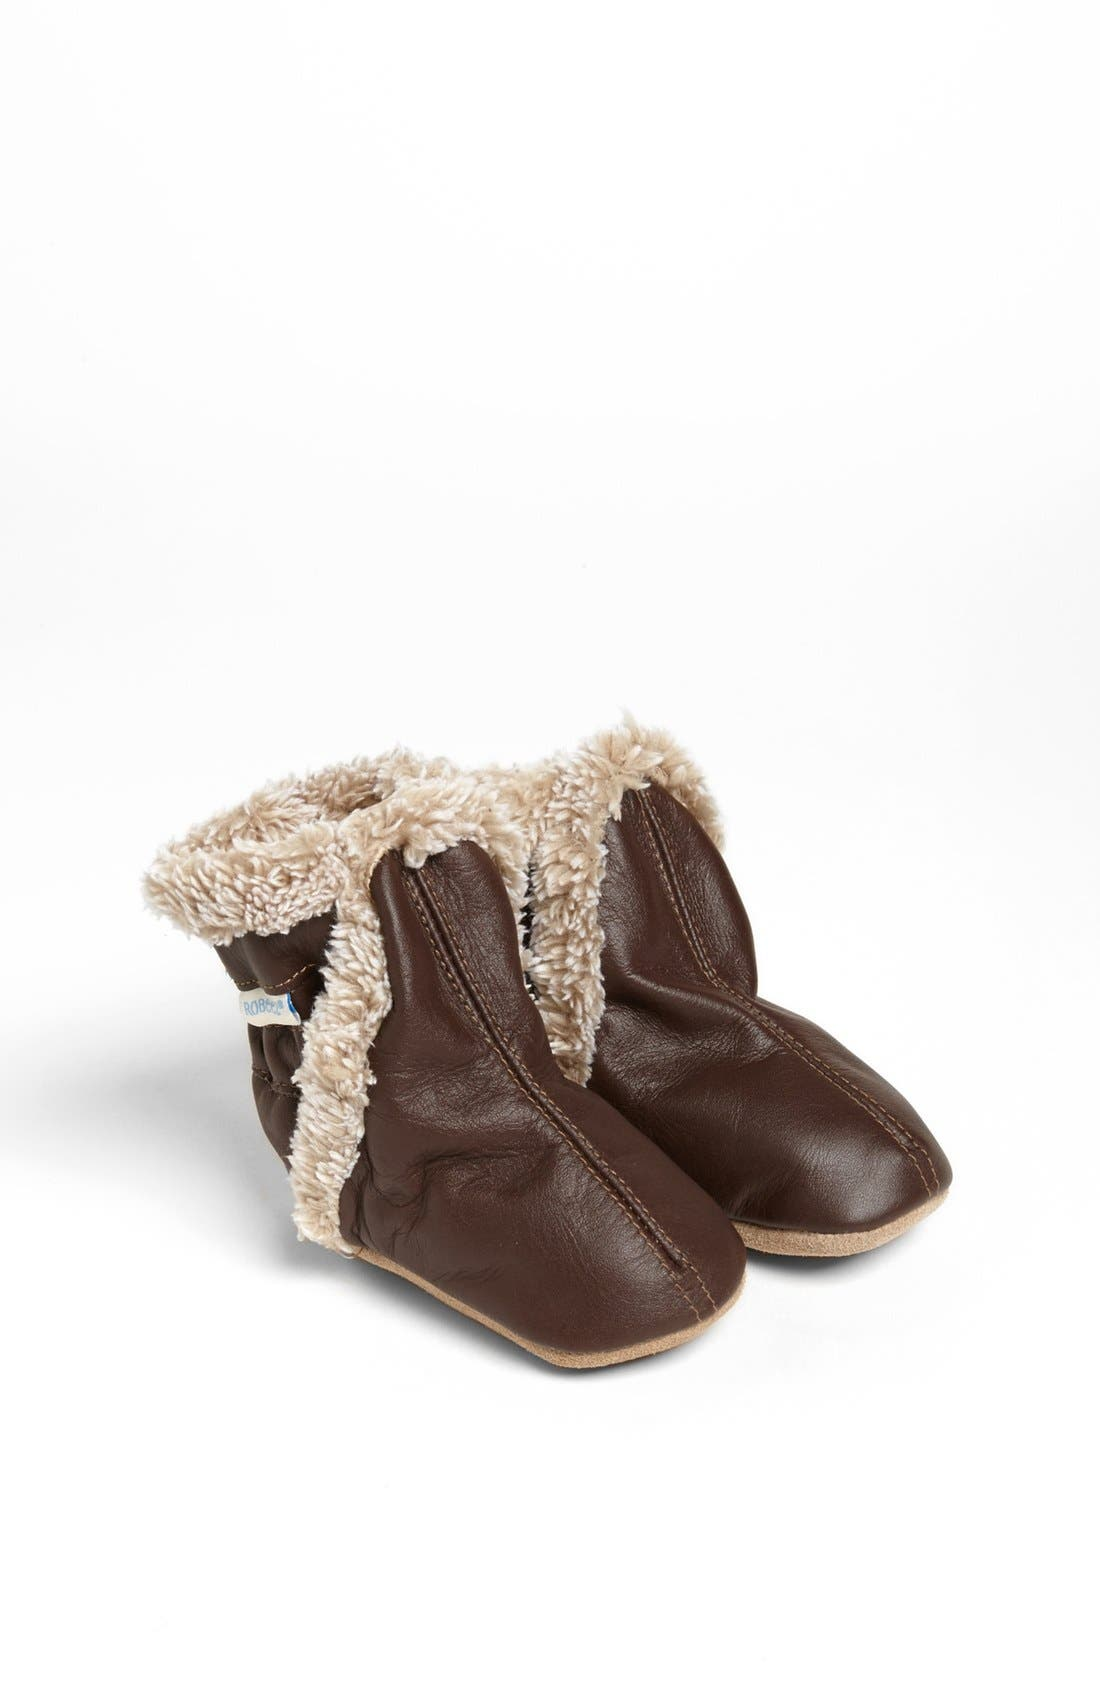 Alternate Image 1 Selected - Robeez® 'Classic' Bootie (Baby & Walker)